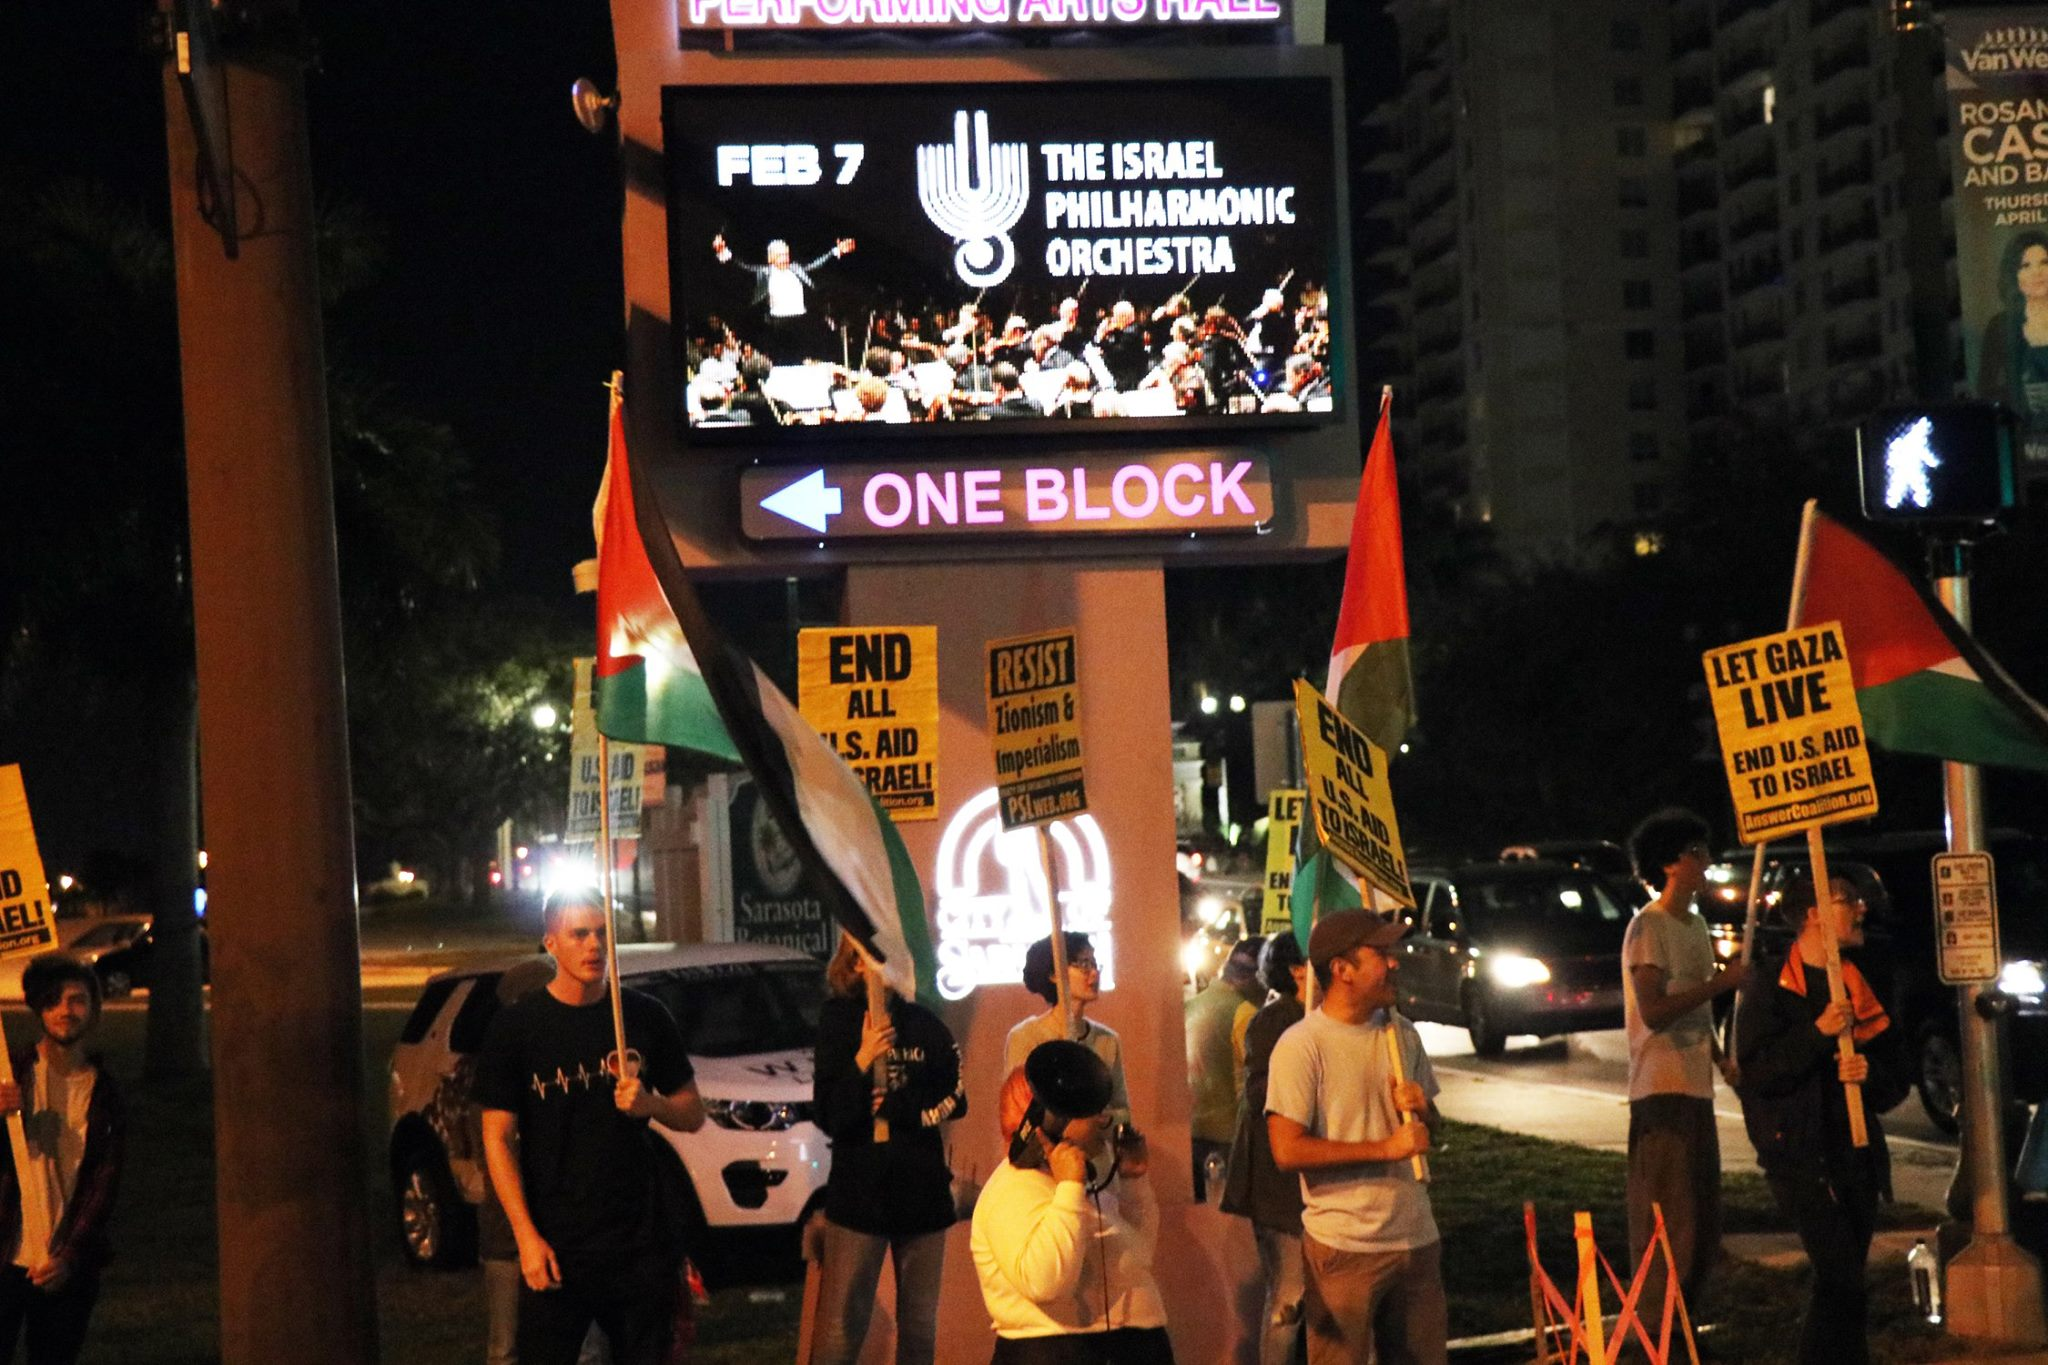 Photo of Israel Philharmonic Orchestra greeted by protest in Sarasota